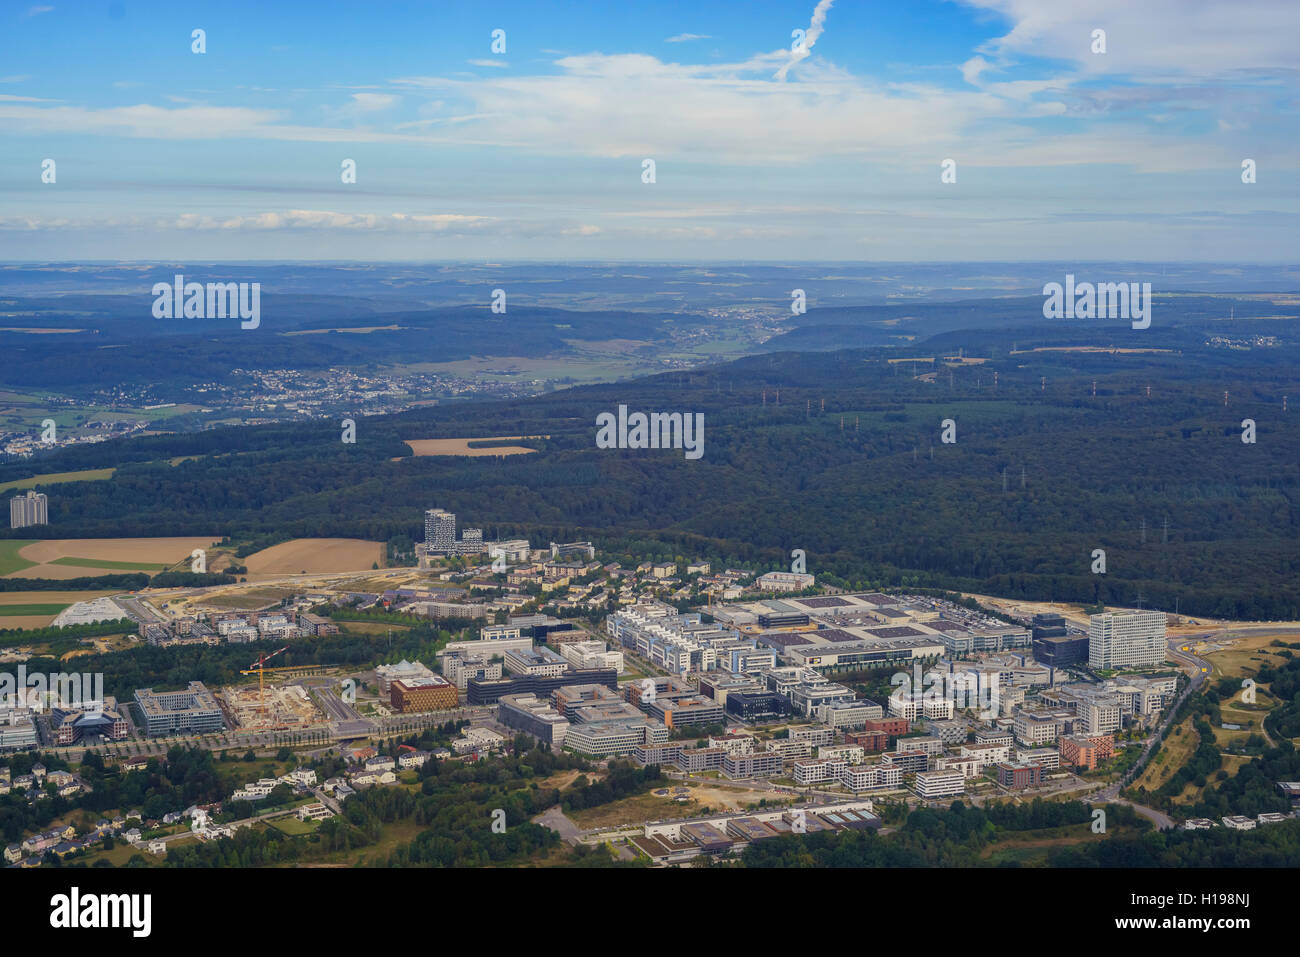 Aerial view of the Kirchberg city, Luxembourg - Stock Image